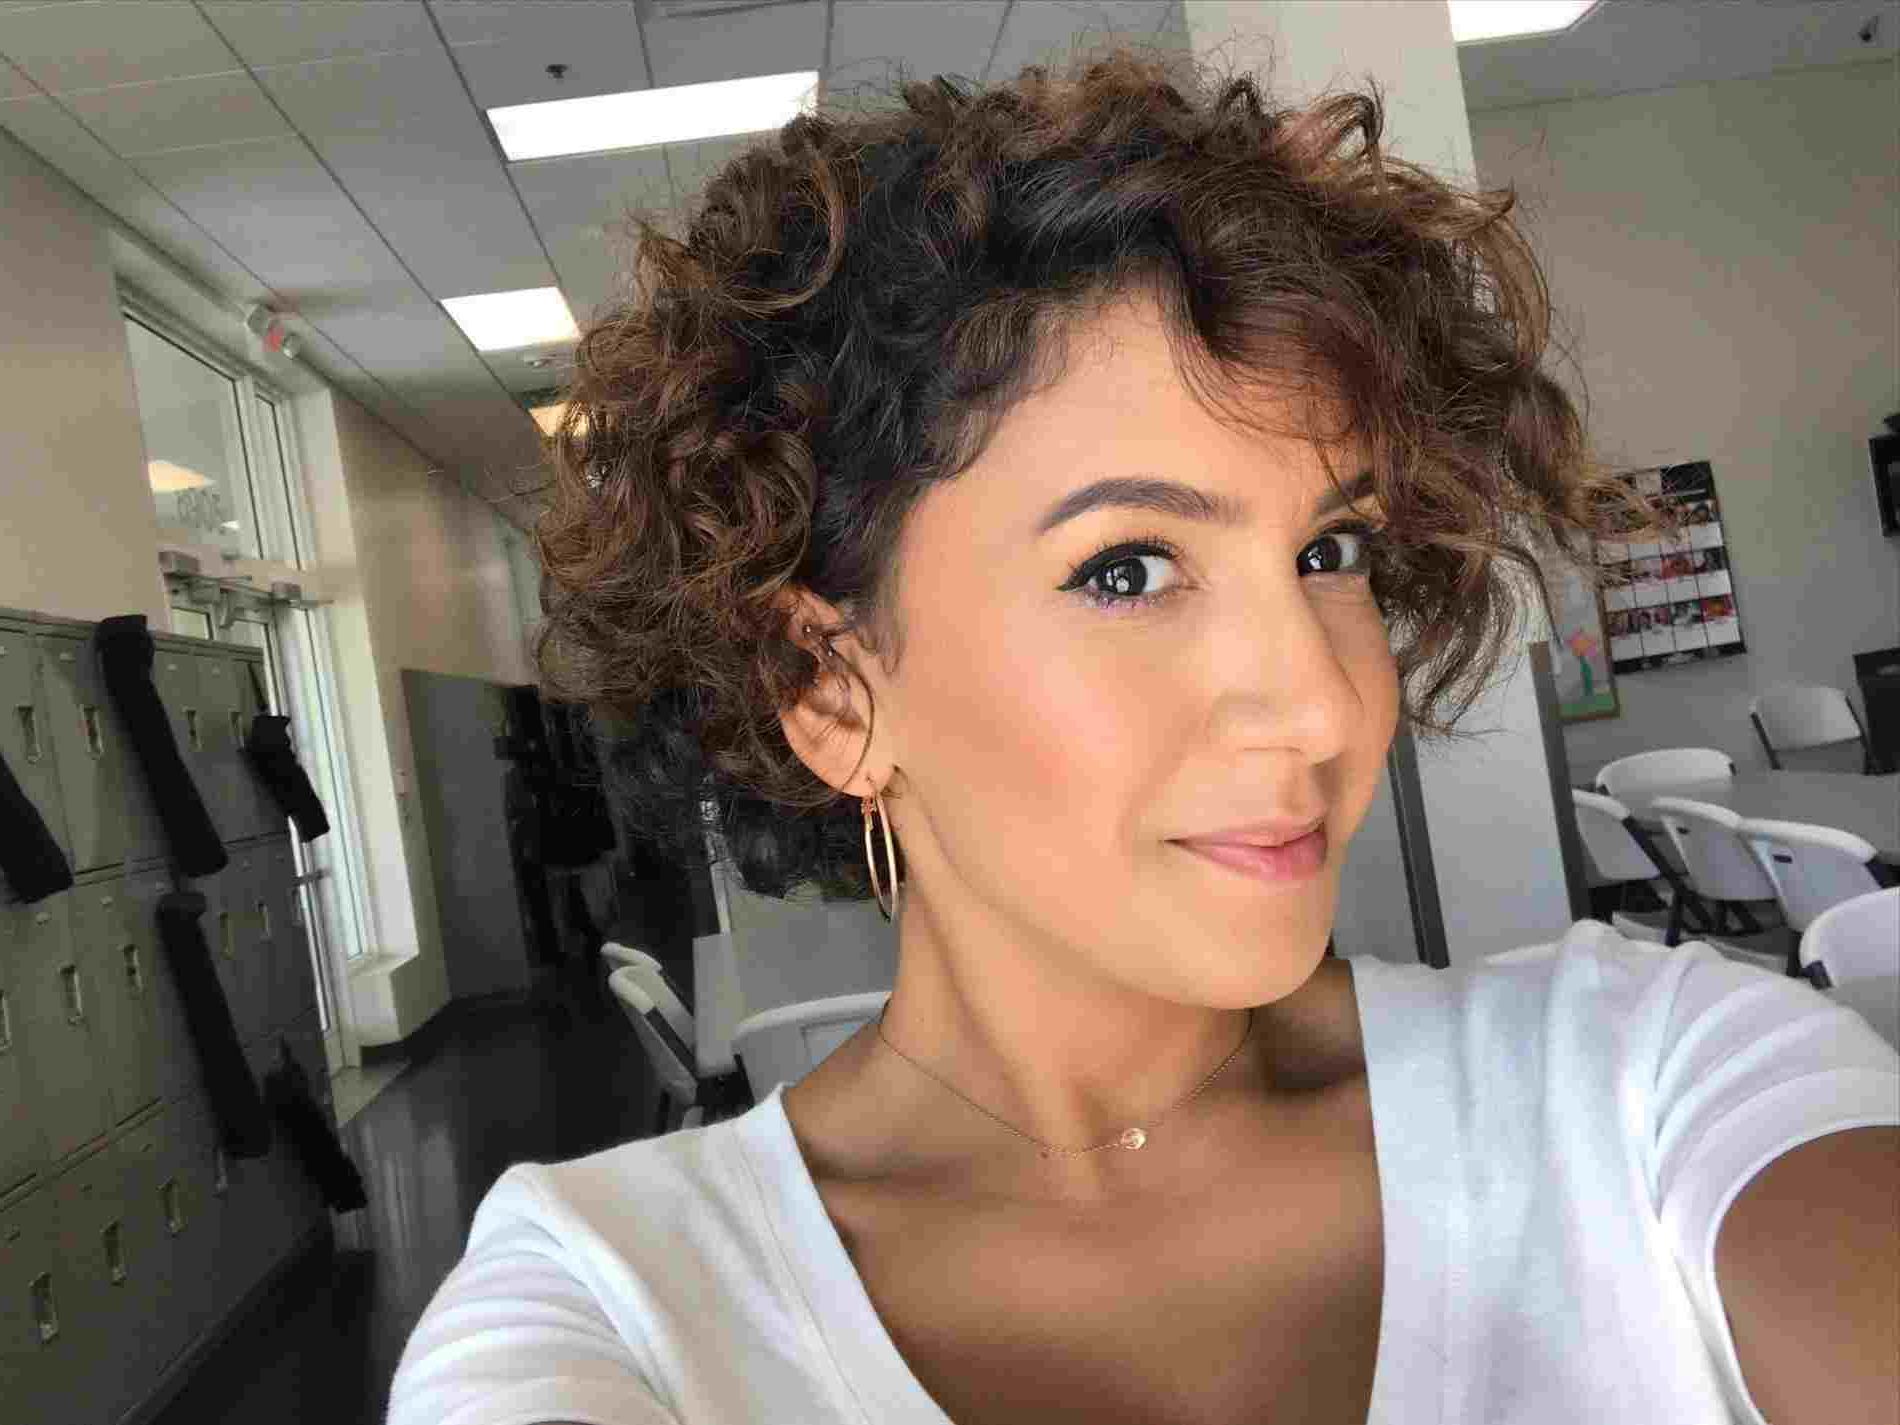 Adorable Natural Curly Hairstyles Tumblr On Short Bob Pixie For Short Bob For Curly Hairstyles (Gallery 13 of 25)